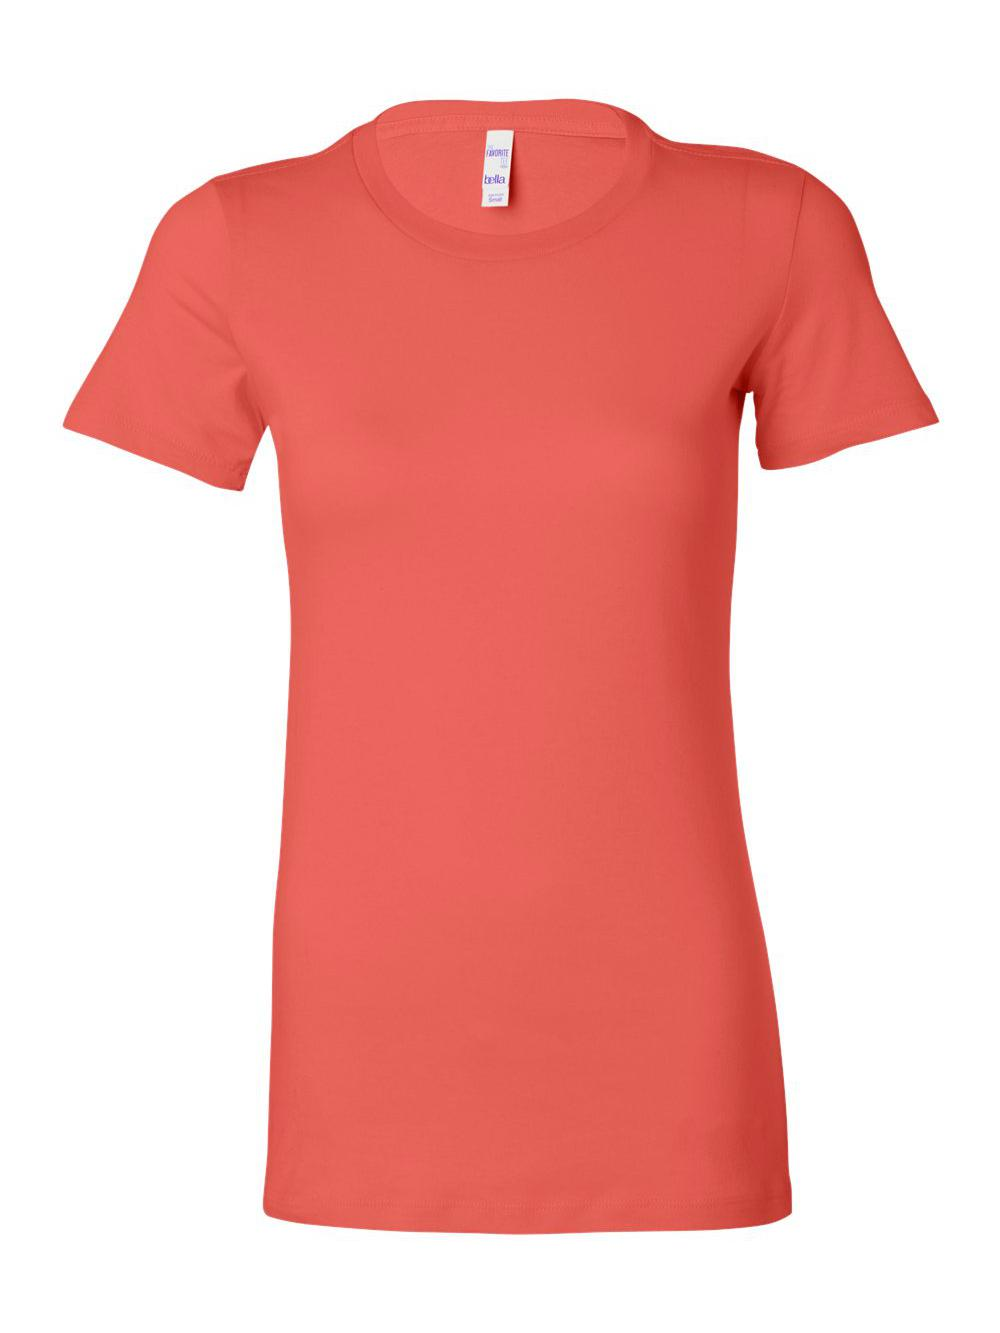 Bella-Canvas-Women-039-s-The-Favorite-Tee-6004 thumbnail 27